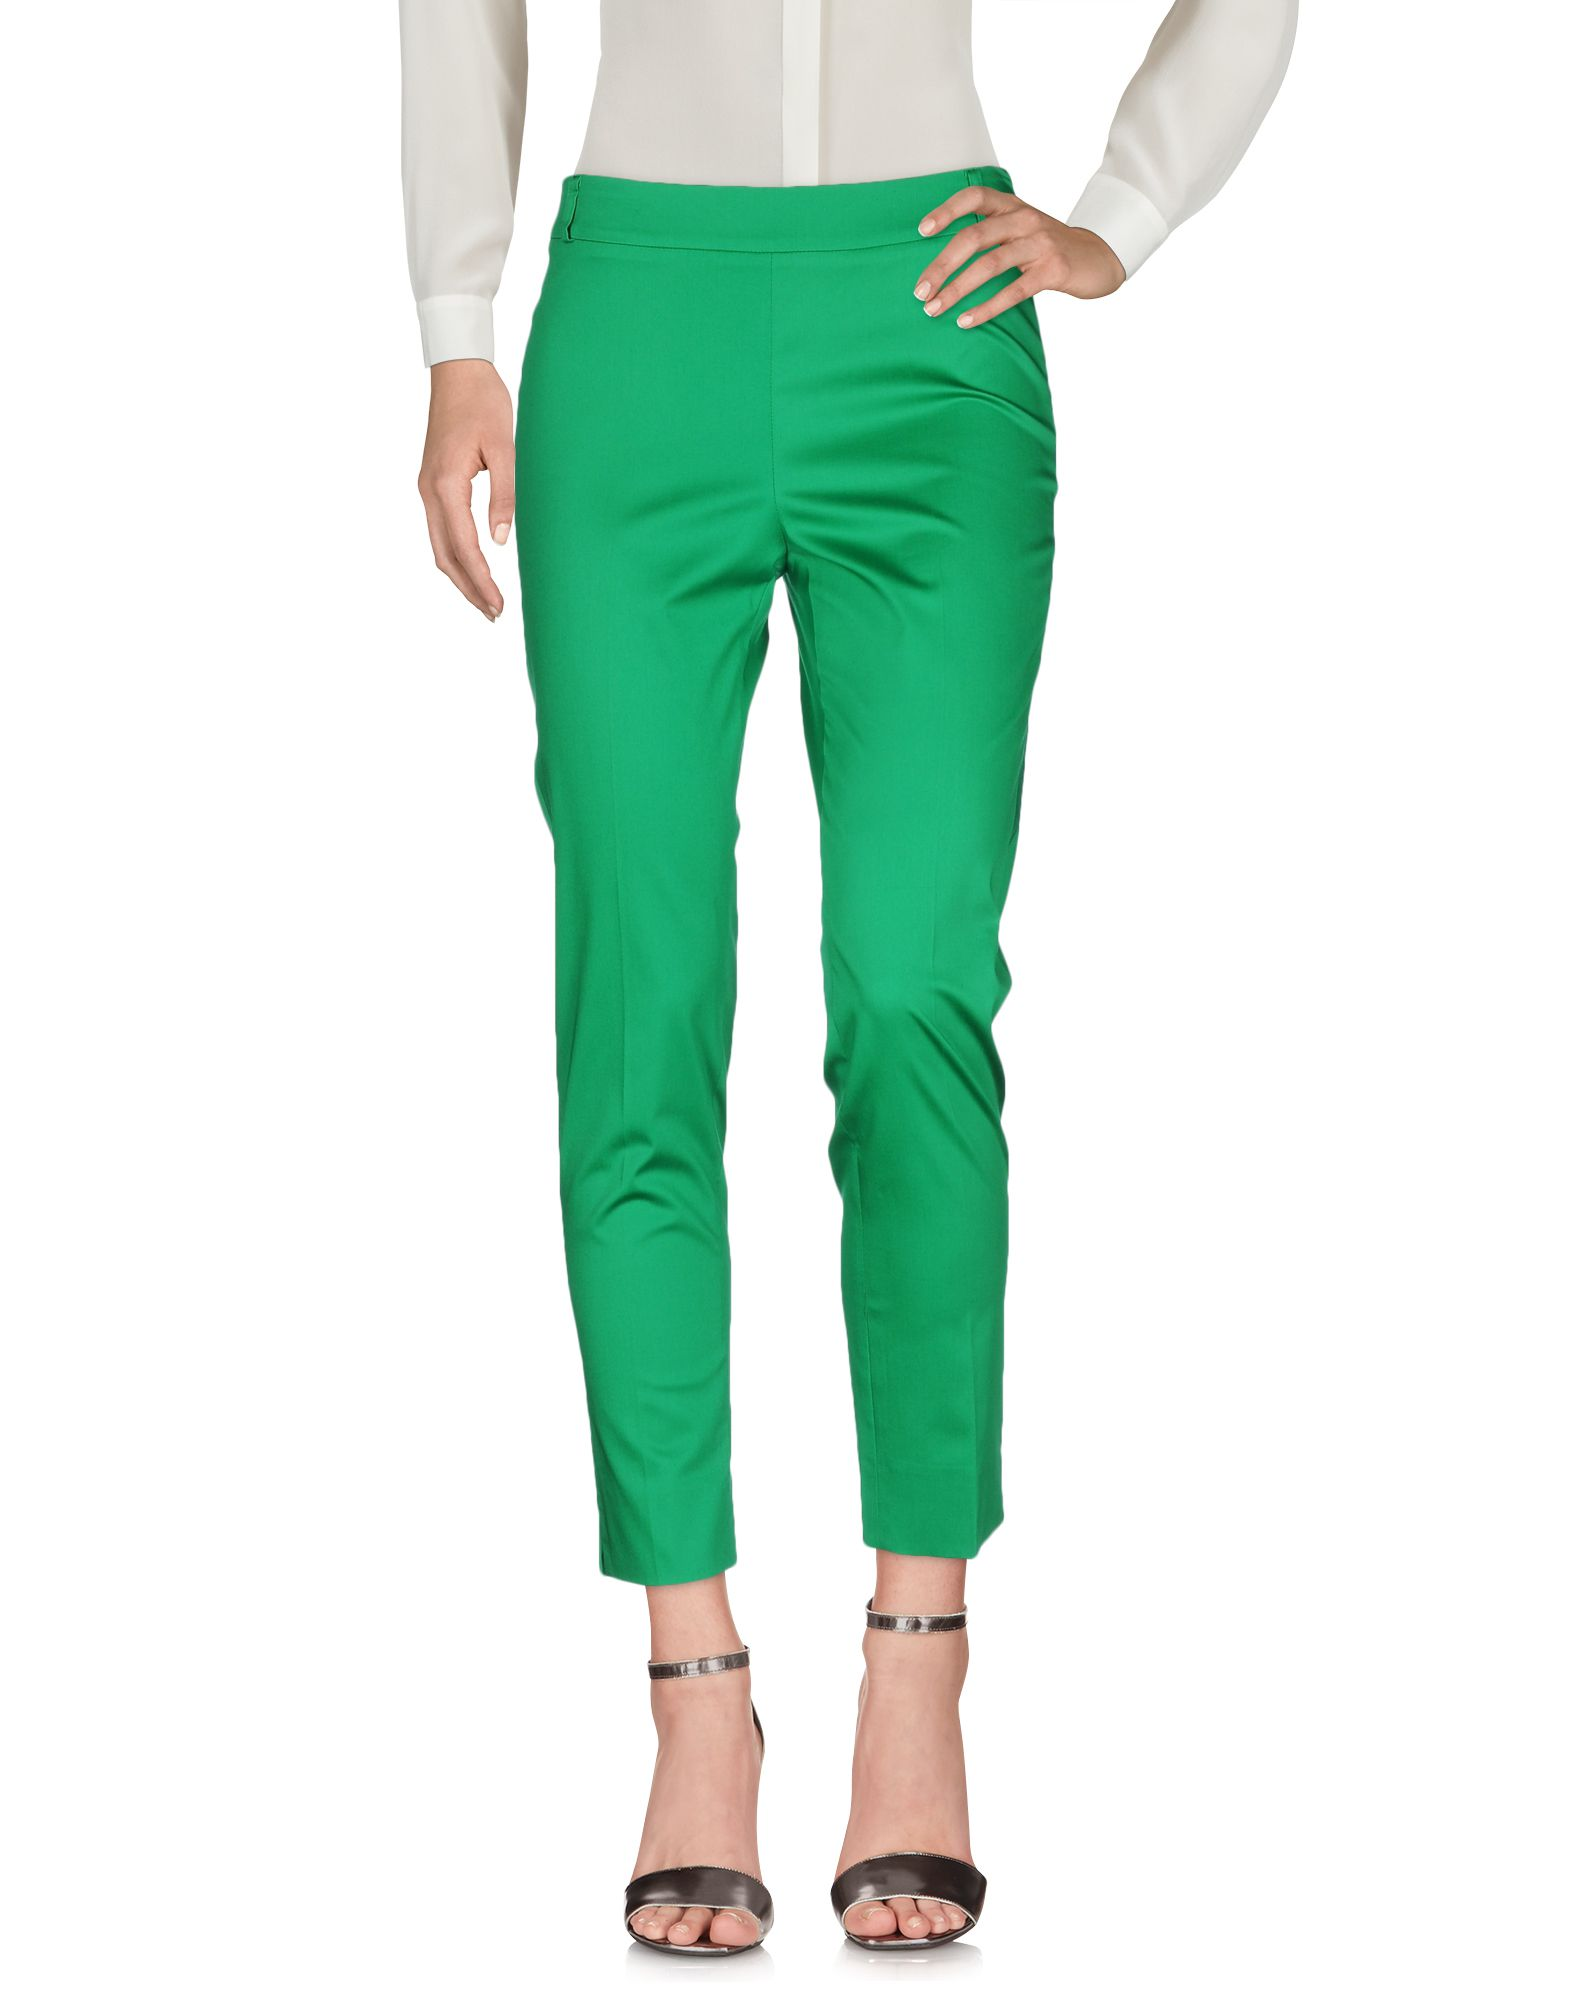 WEILL Casual Pants in Green